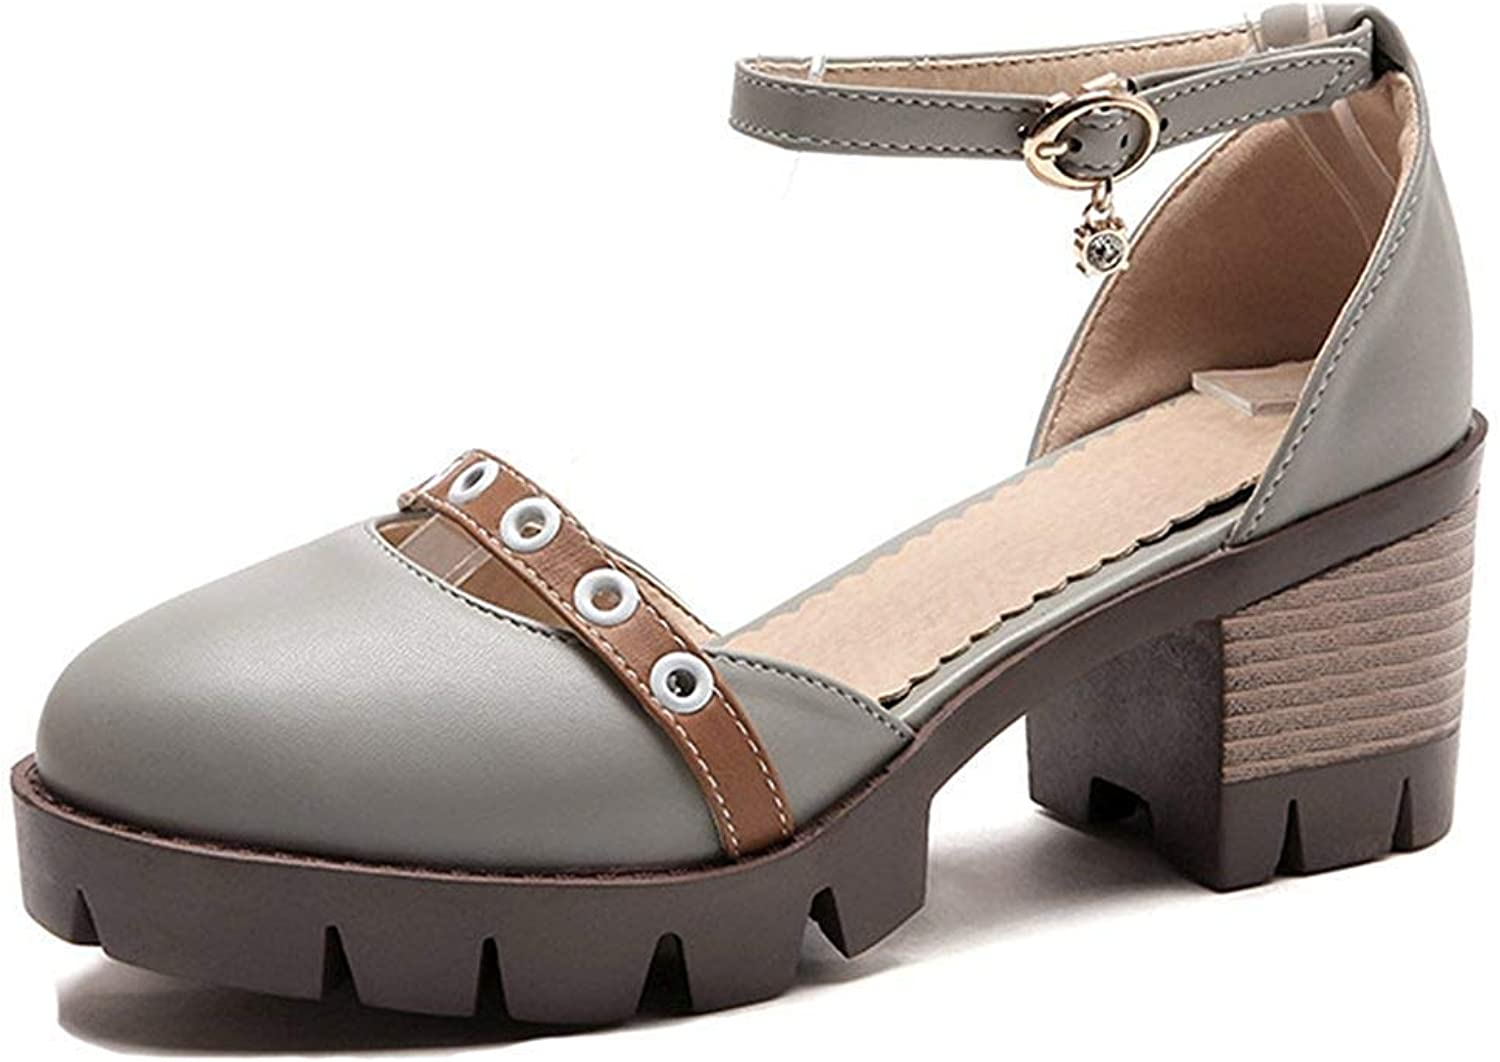 Unm Women's Closed Toe Sandals with Platform - Comfy Buckled Ankle Strap - D'Orsay Mid Stacked Heels